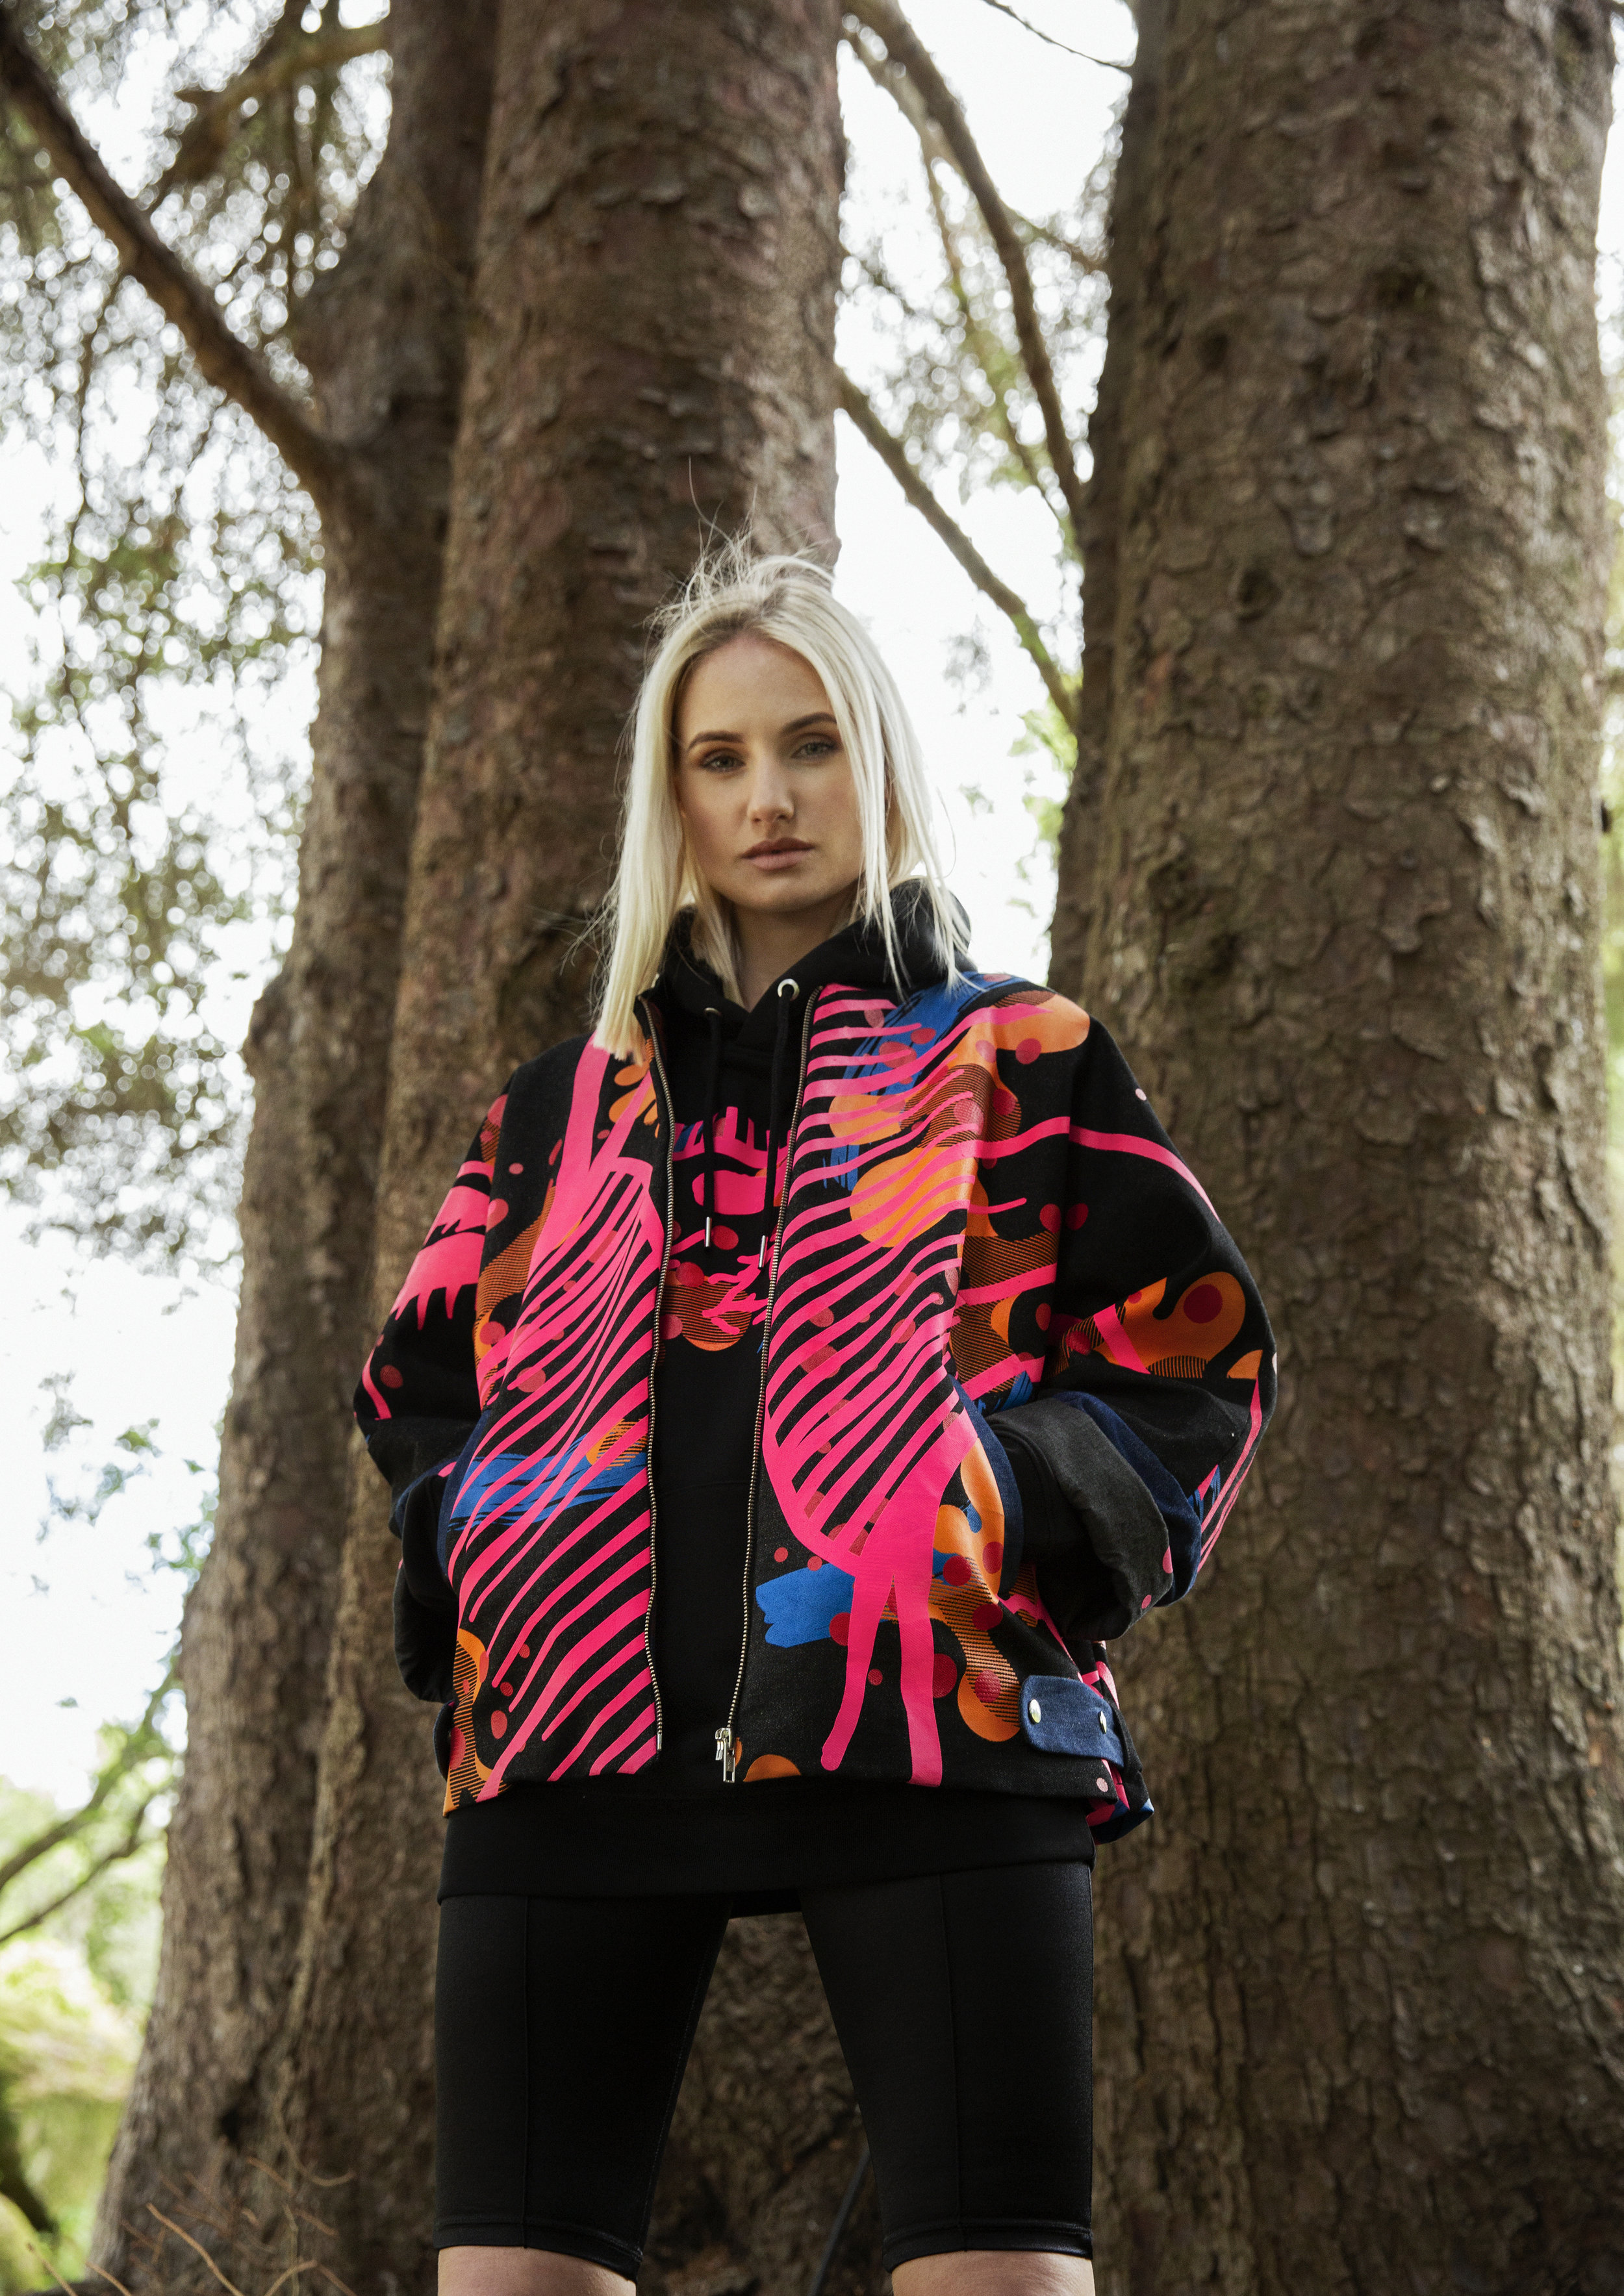 Iconic Bomber - The bespoke limited edition bomber jacket is bold, graphic and obsessive in its creation, with each printed section carefully selected, hand cut and sewn to create a one of a kind piece.